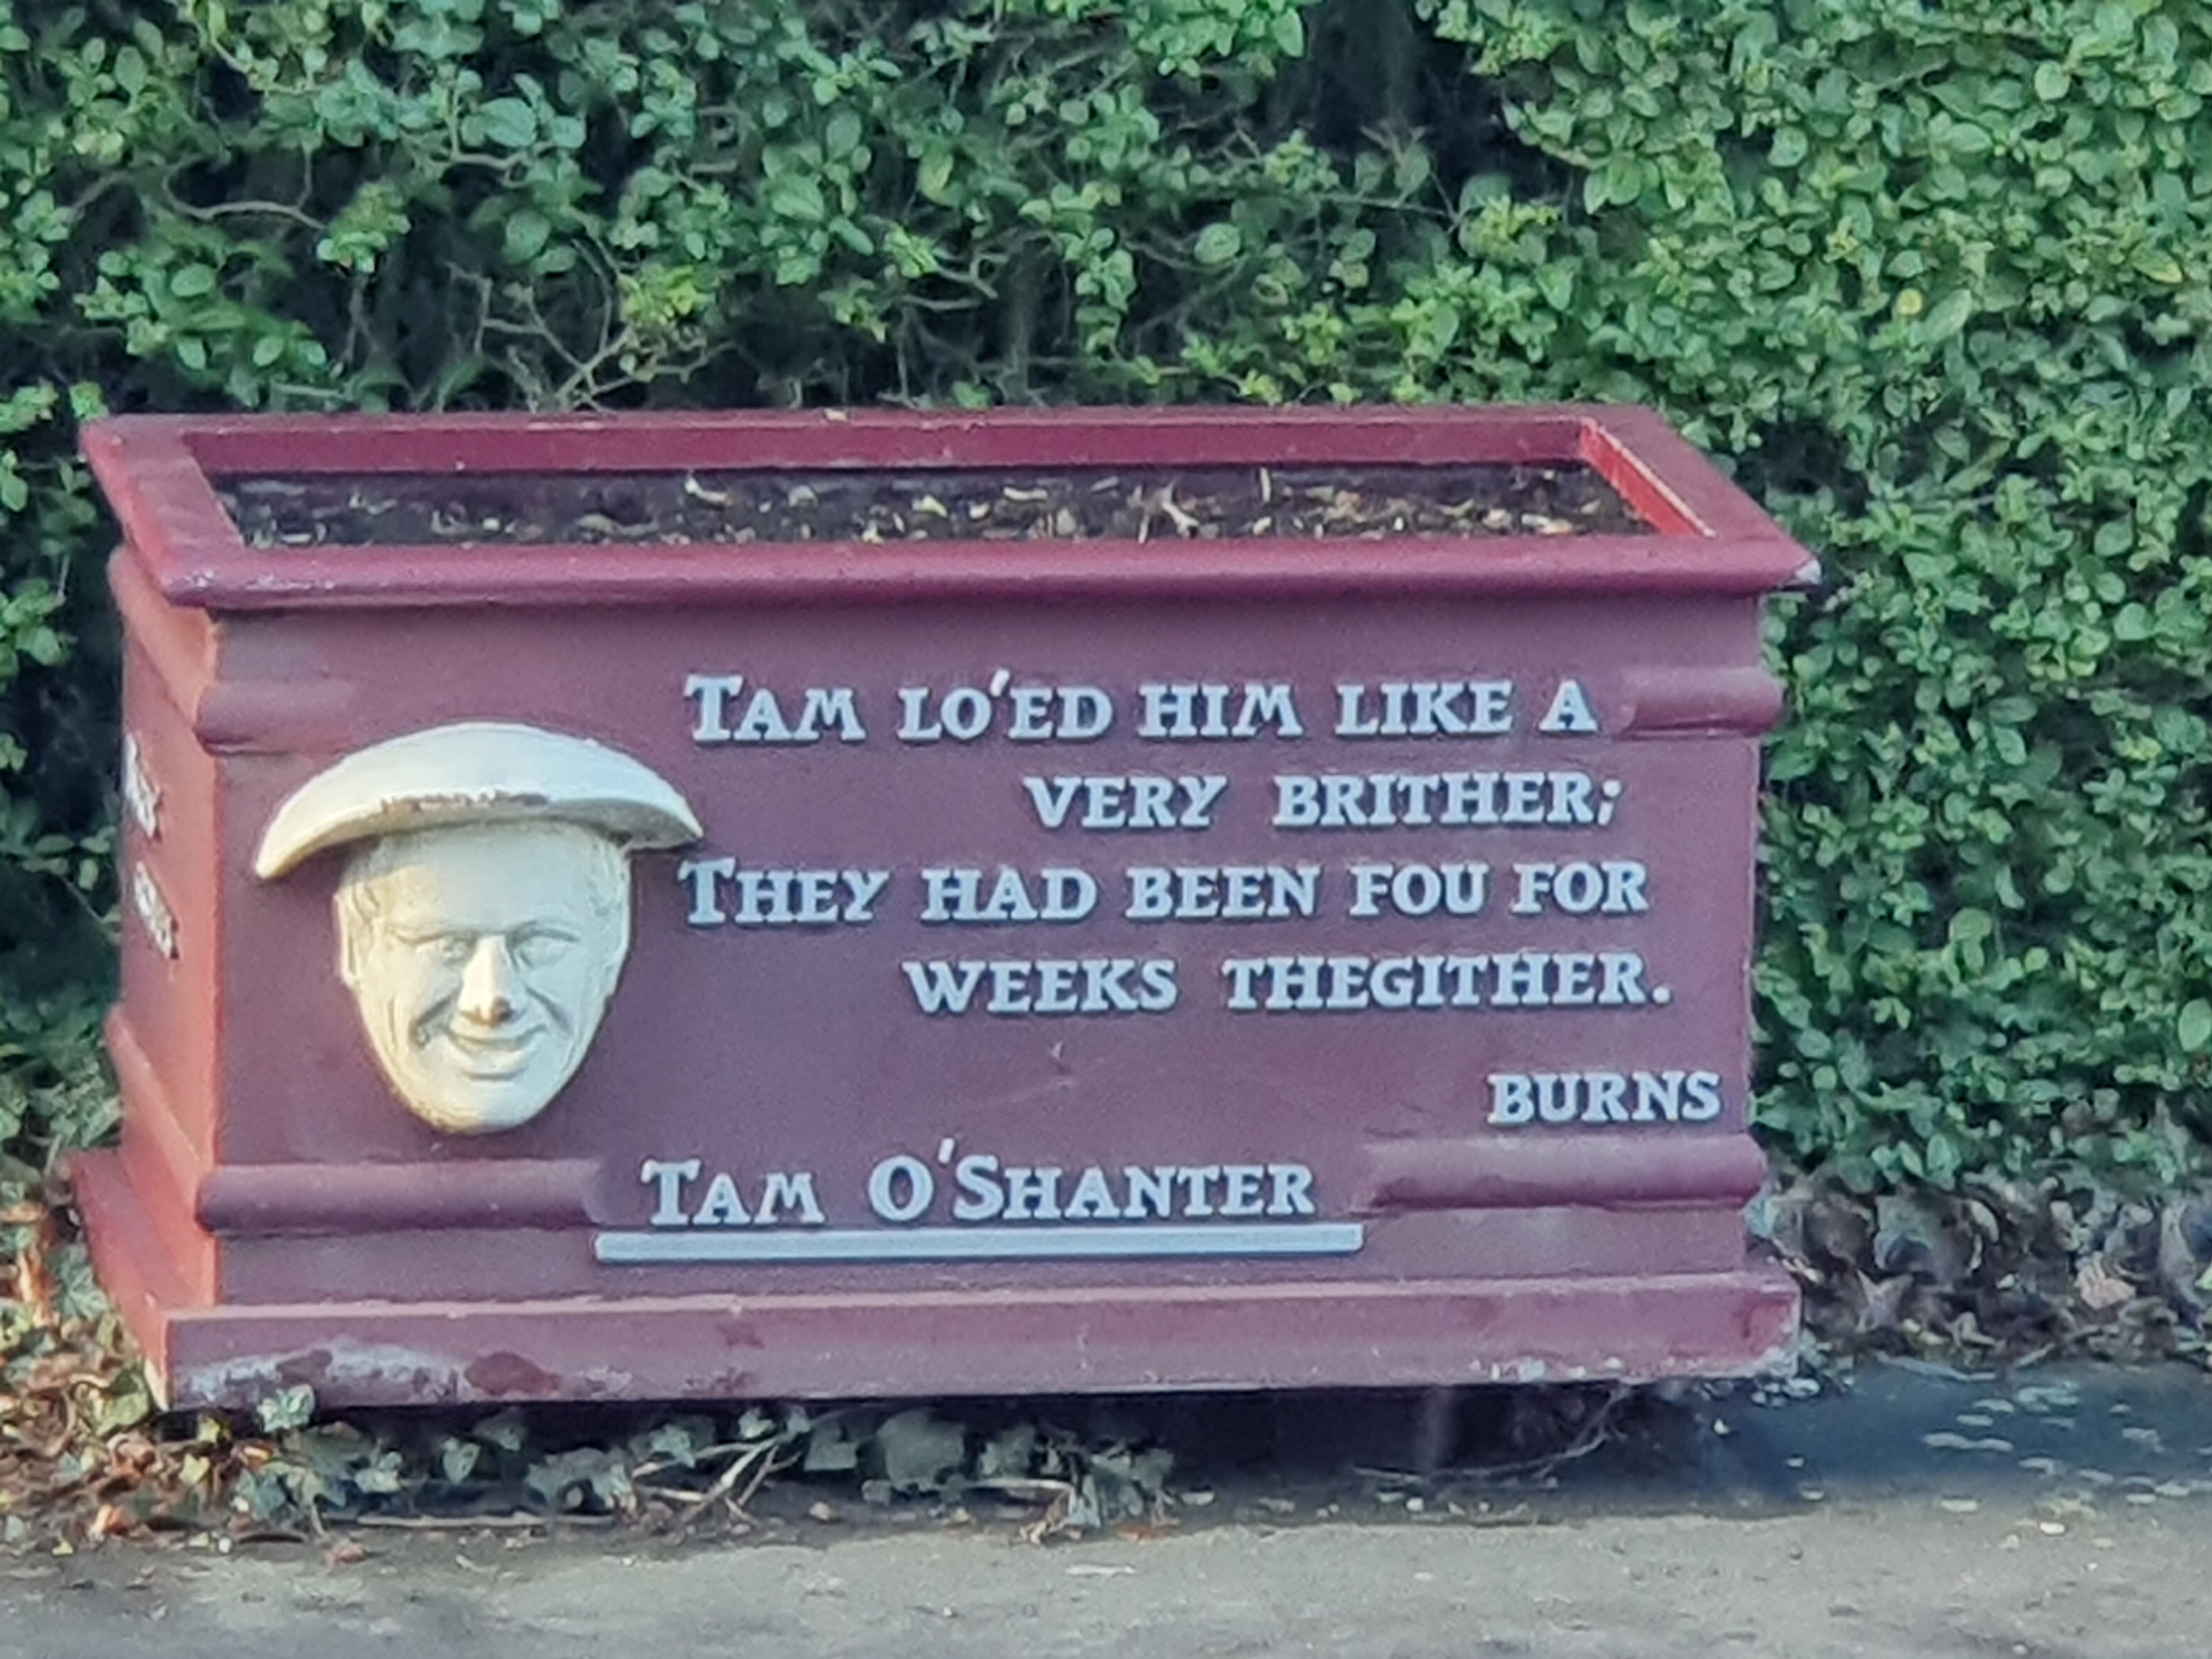 This is a picture of a red Plant Box sitting on the pavement outside Burns Cottage. The box is red and has a white outline of an old man and an inscription dedicated to Tam O Shanter